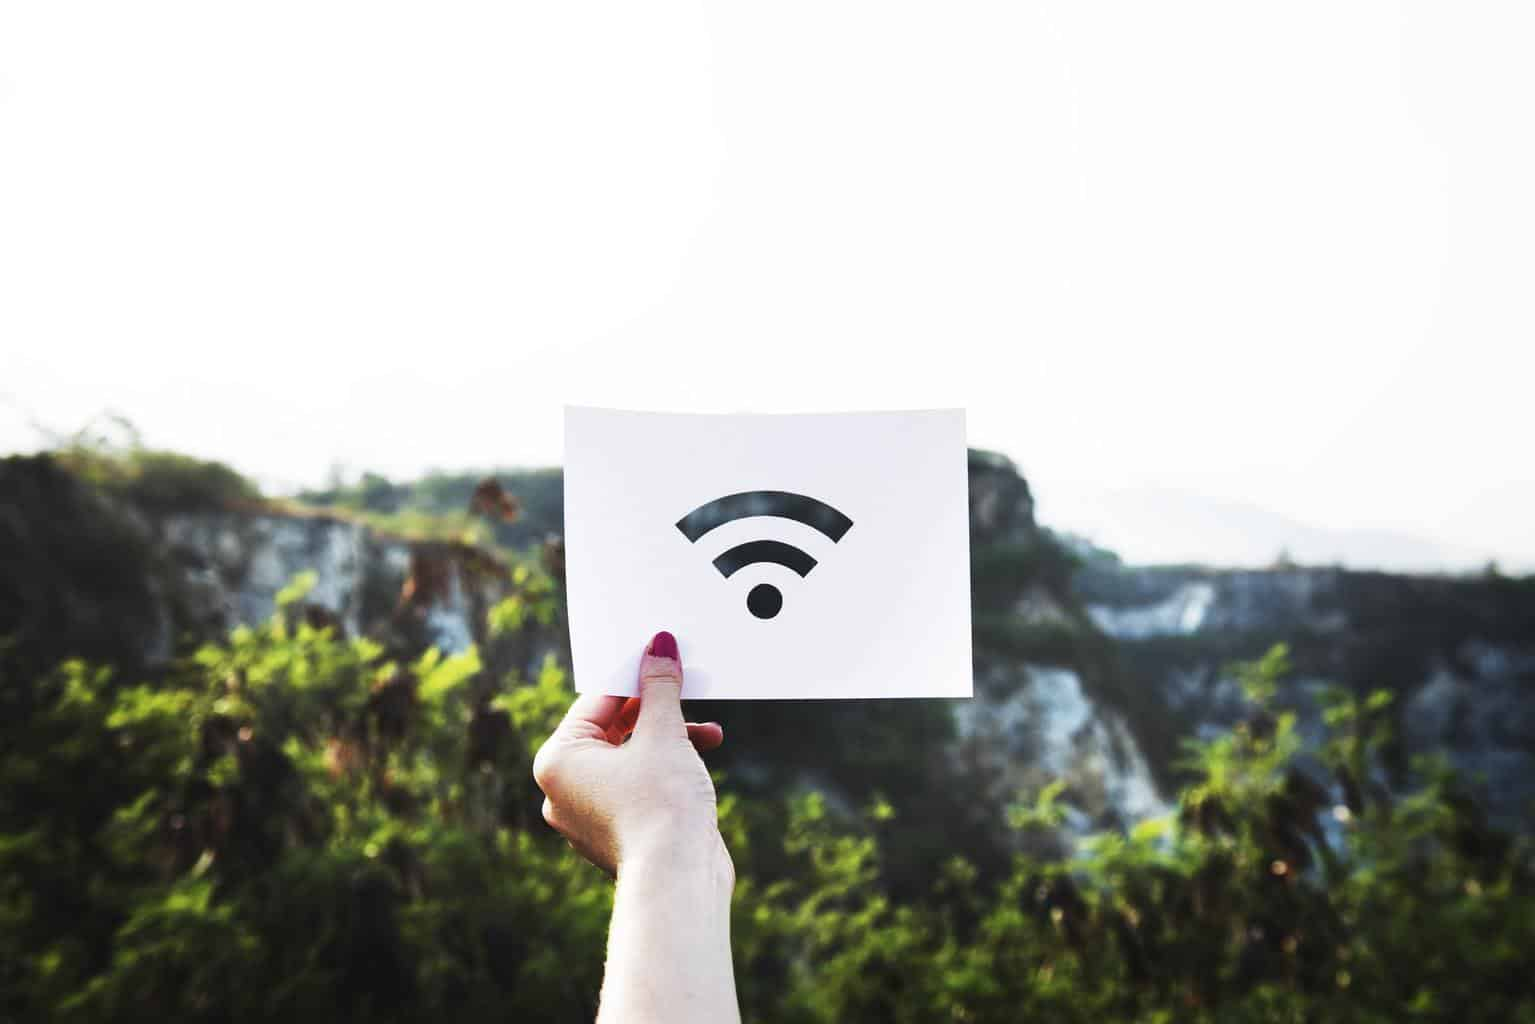 Wi-Fi connected but internet not working?